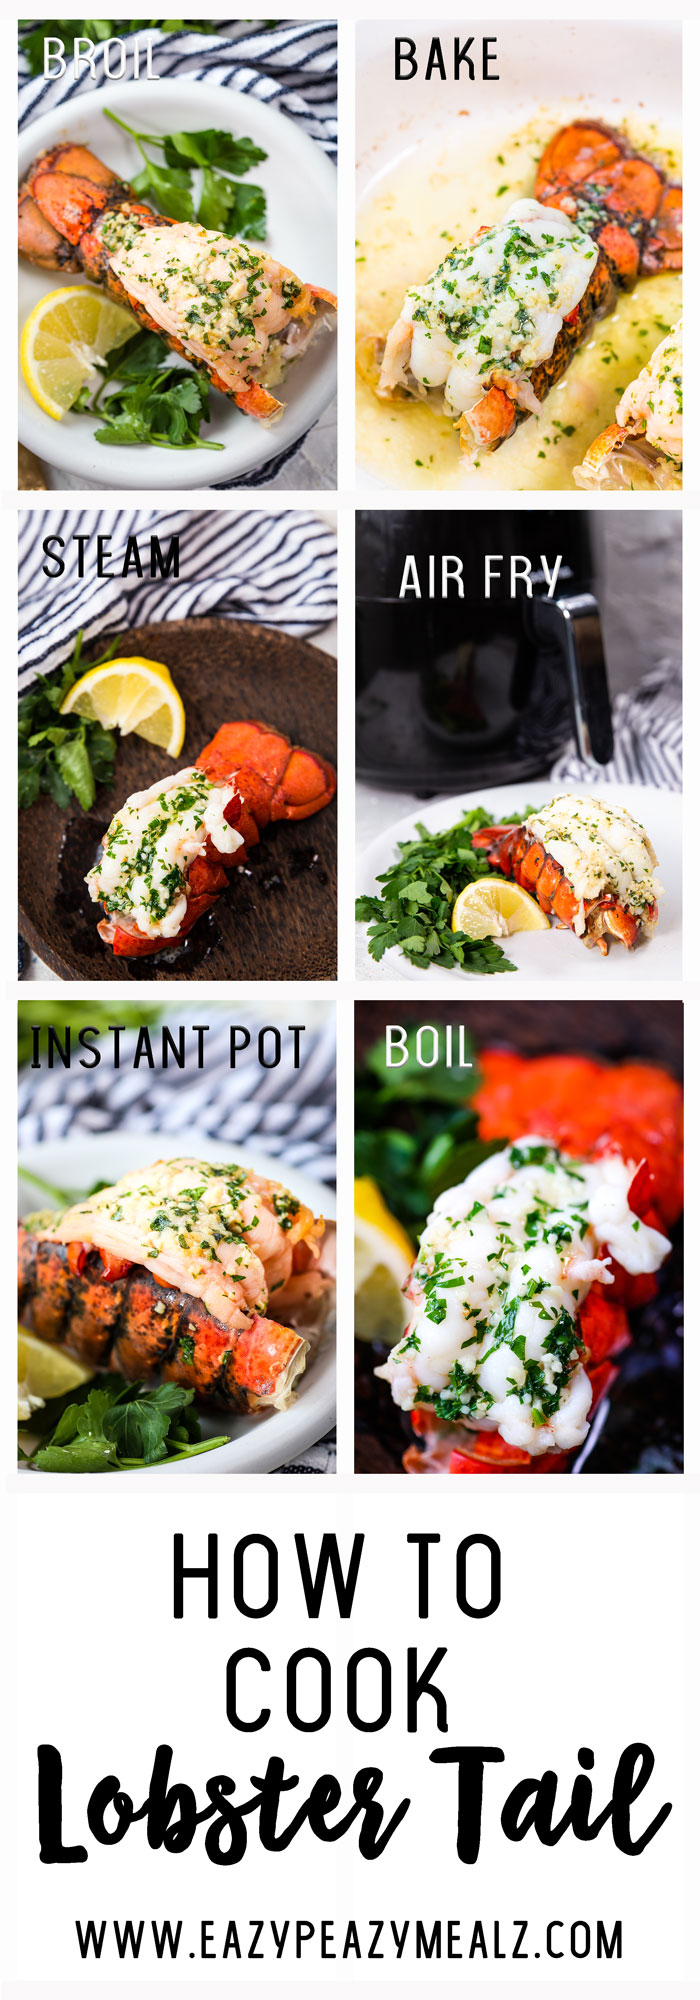 A complete breakdown of the different ways you can cook lobster tail at home, baking it, broiling it, air frying it, instant pot or pressure cooking it, steaming lobster and more.